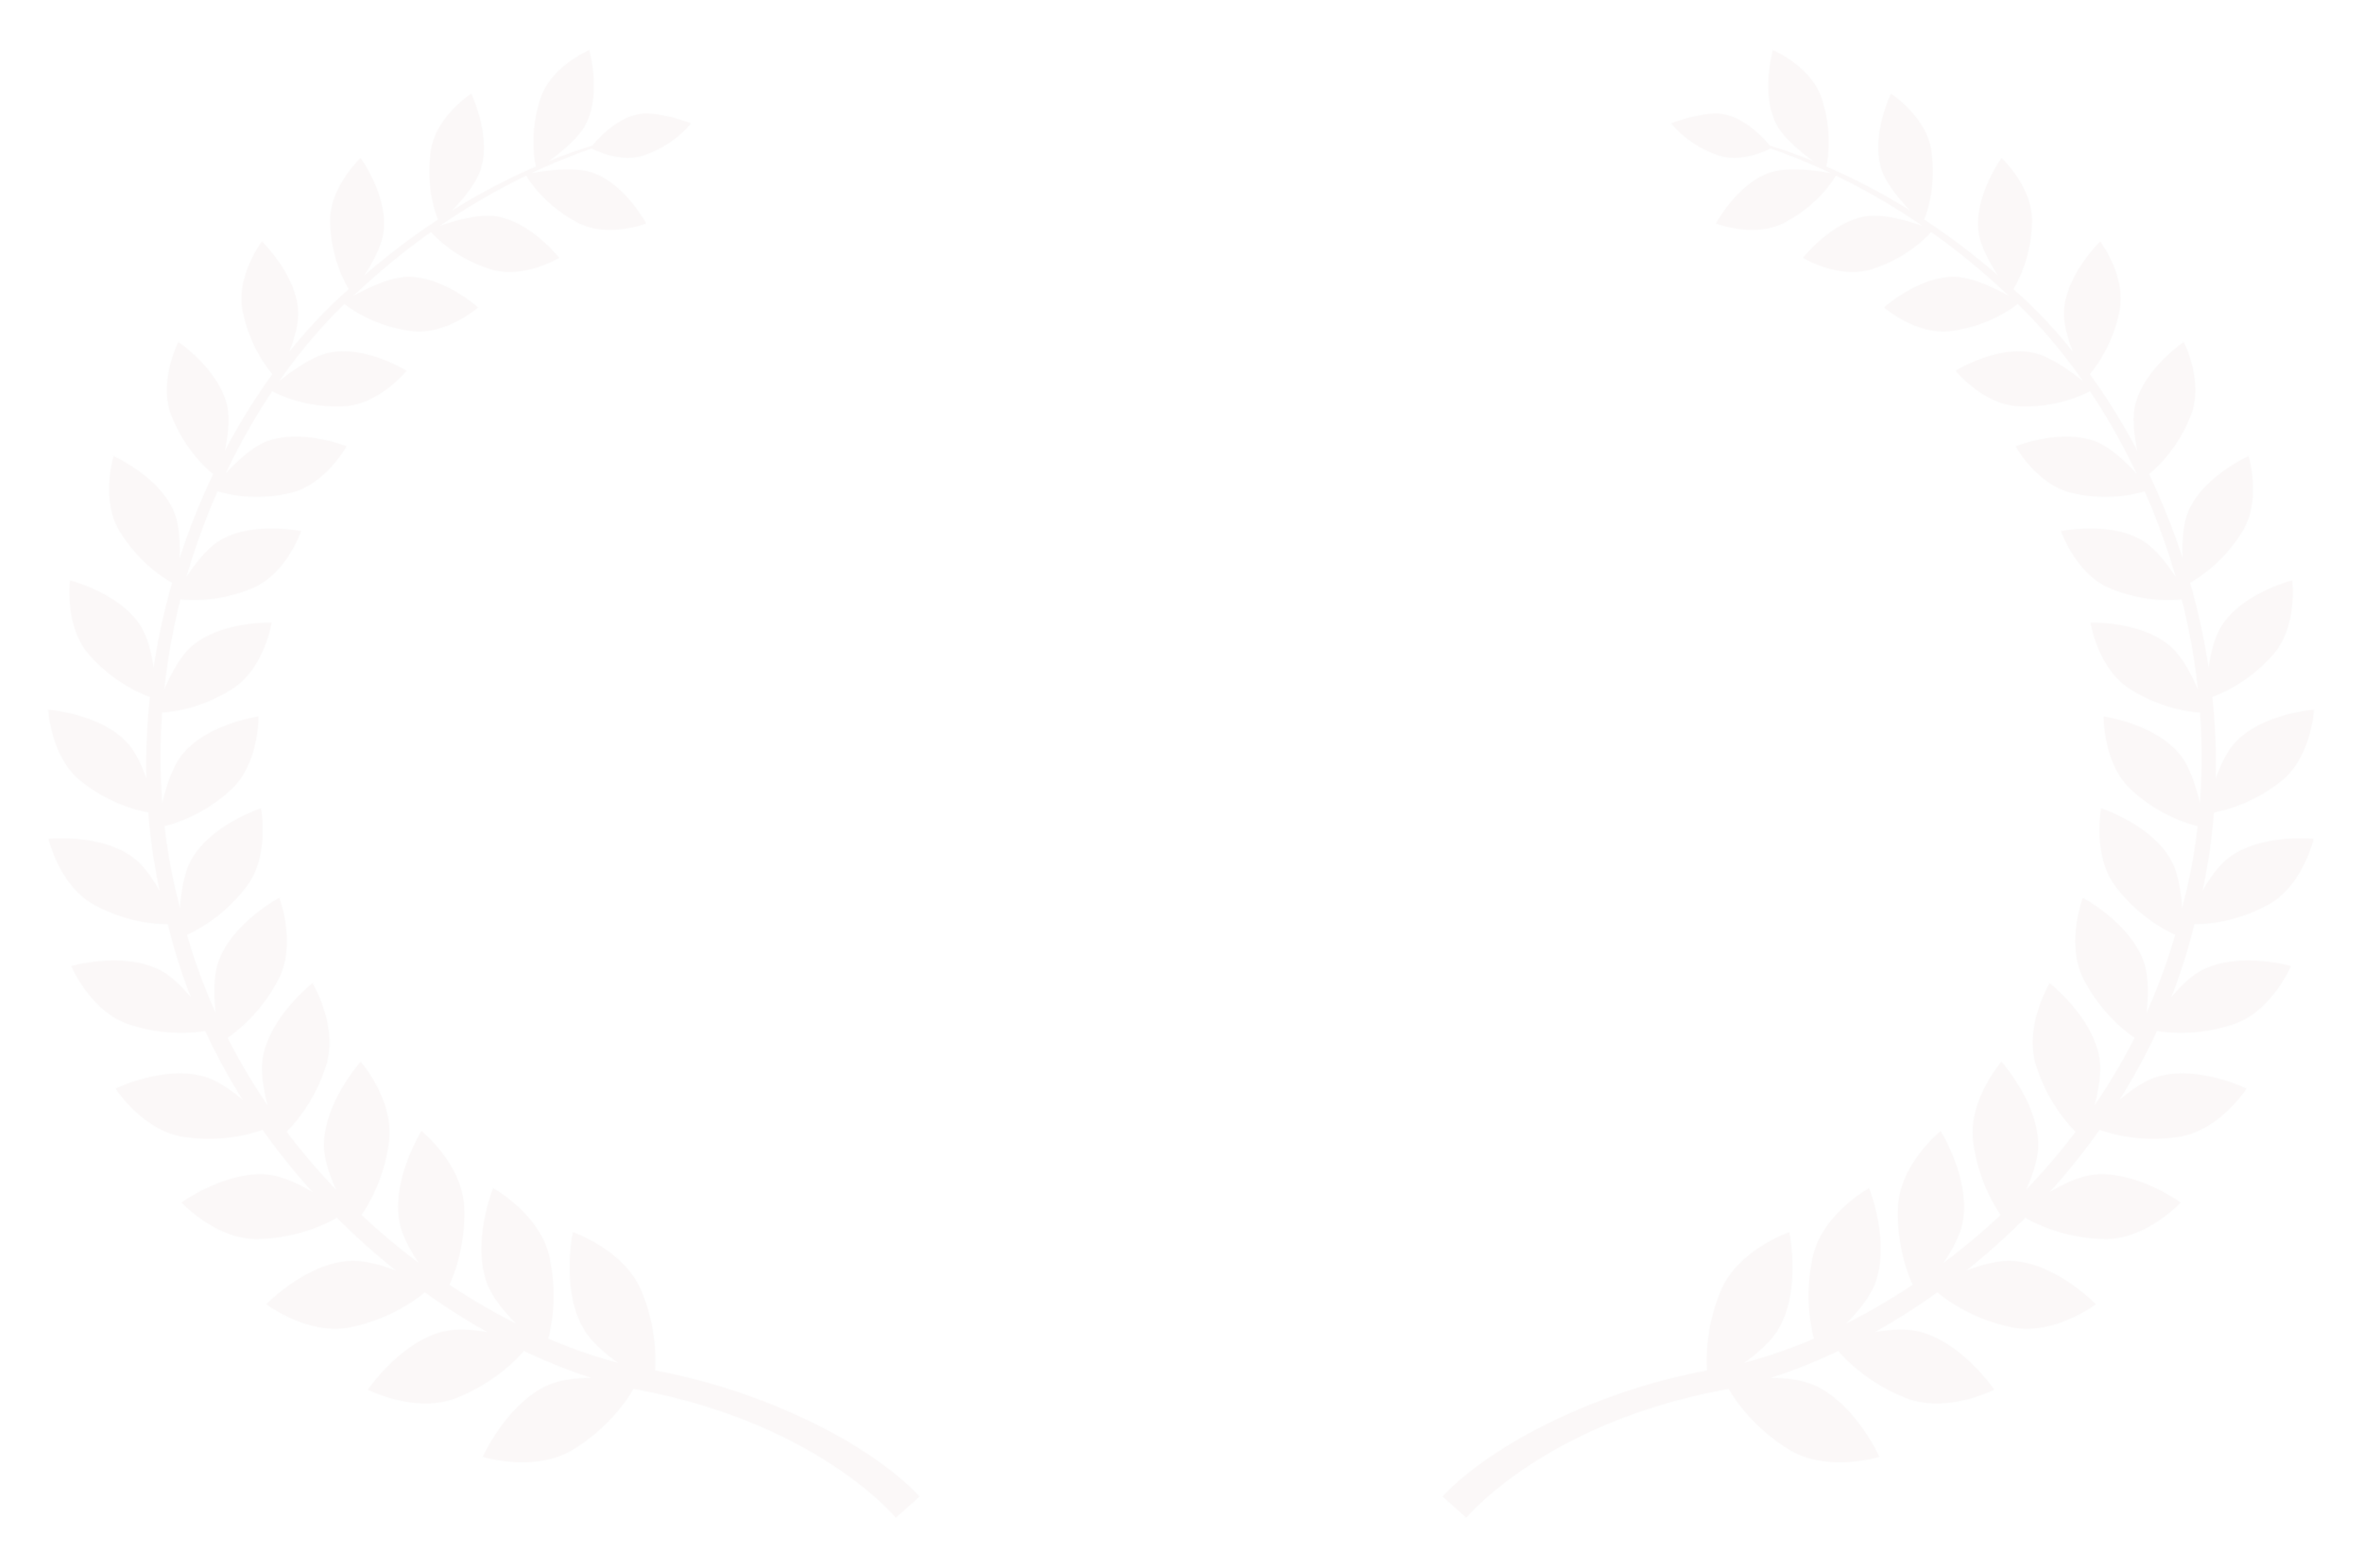 OFFICIALSELECTION-BESTSHORTFEST-2018.png